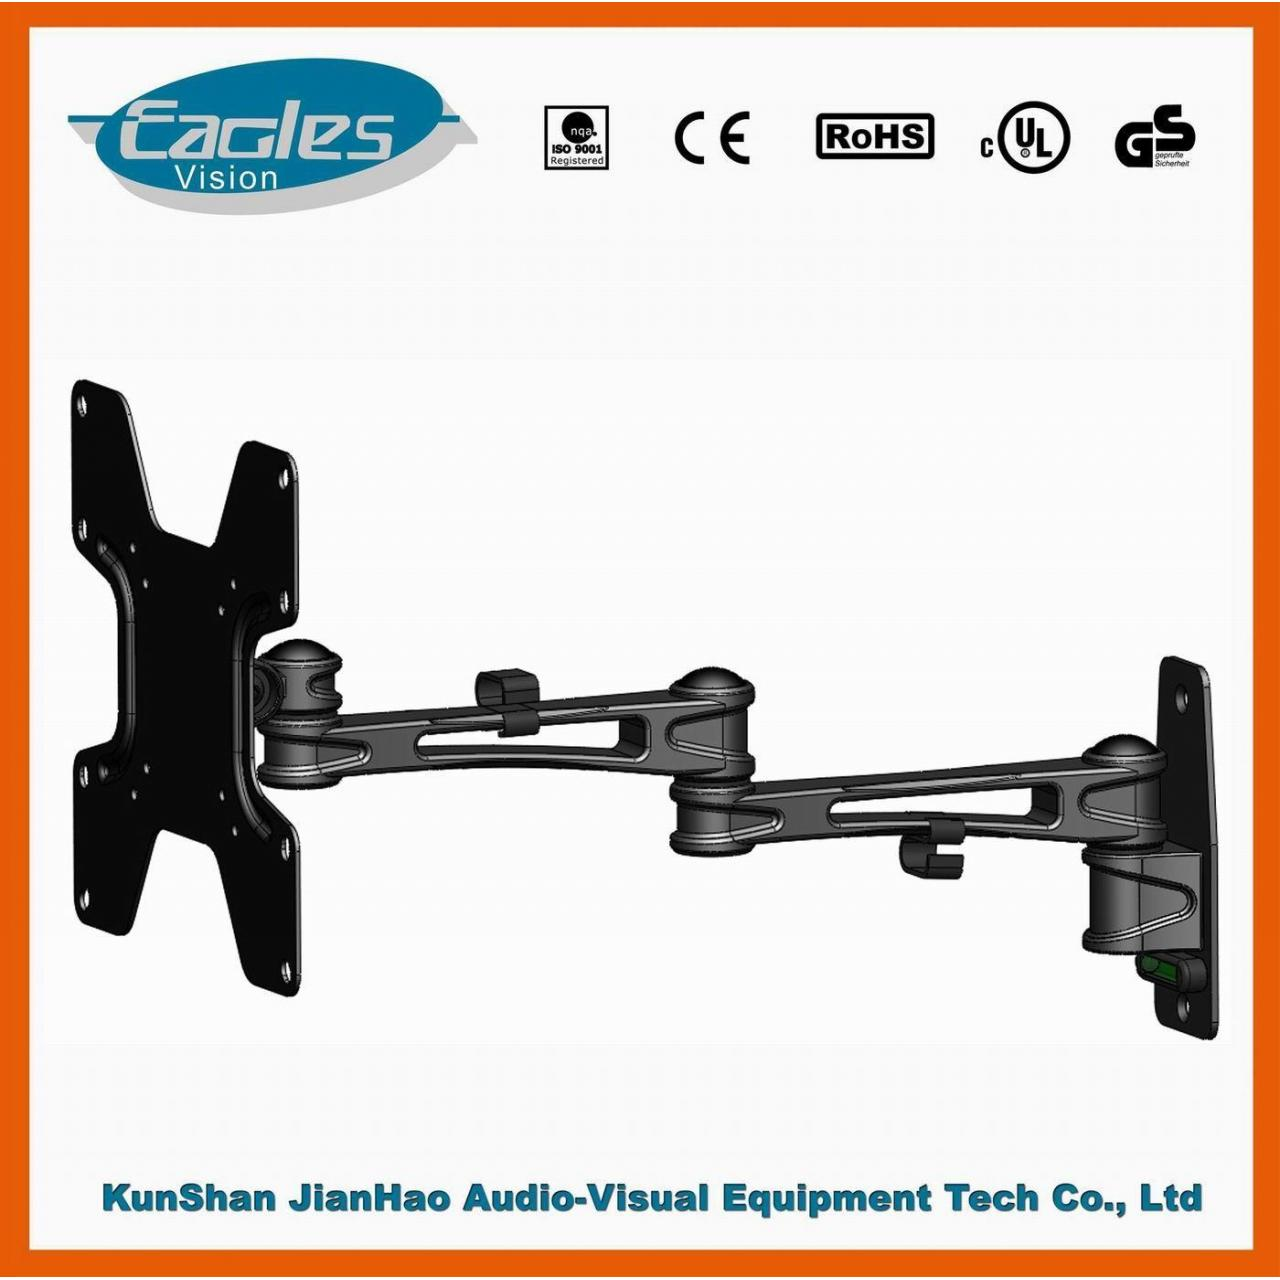 Articulating wall mount LCD-402 Manufactures